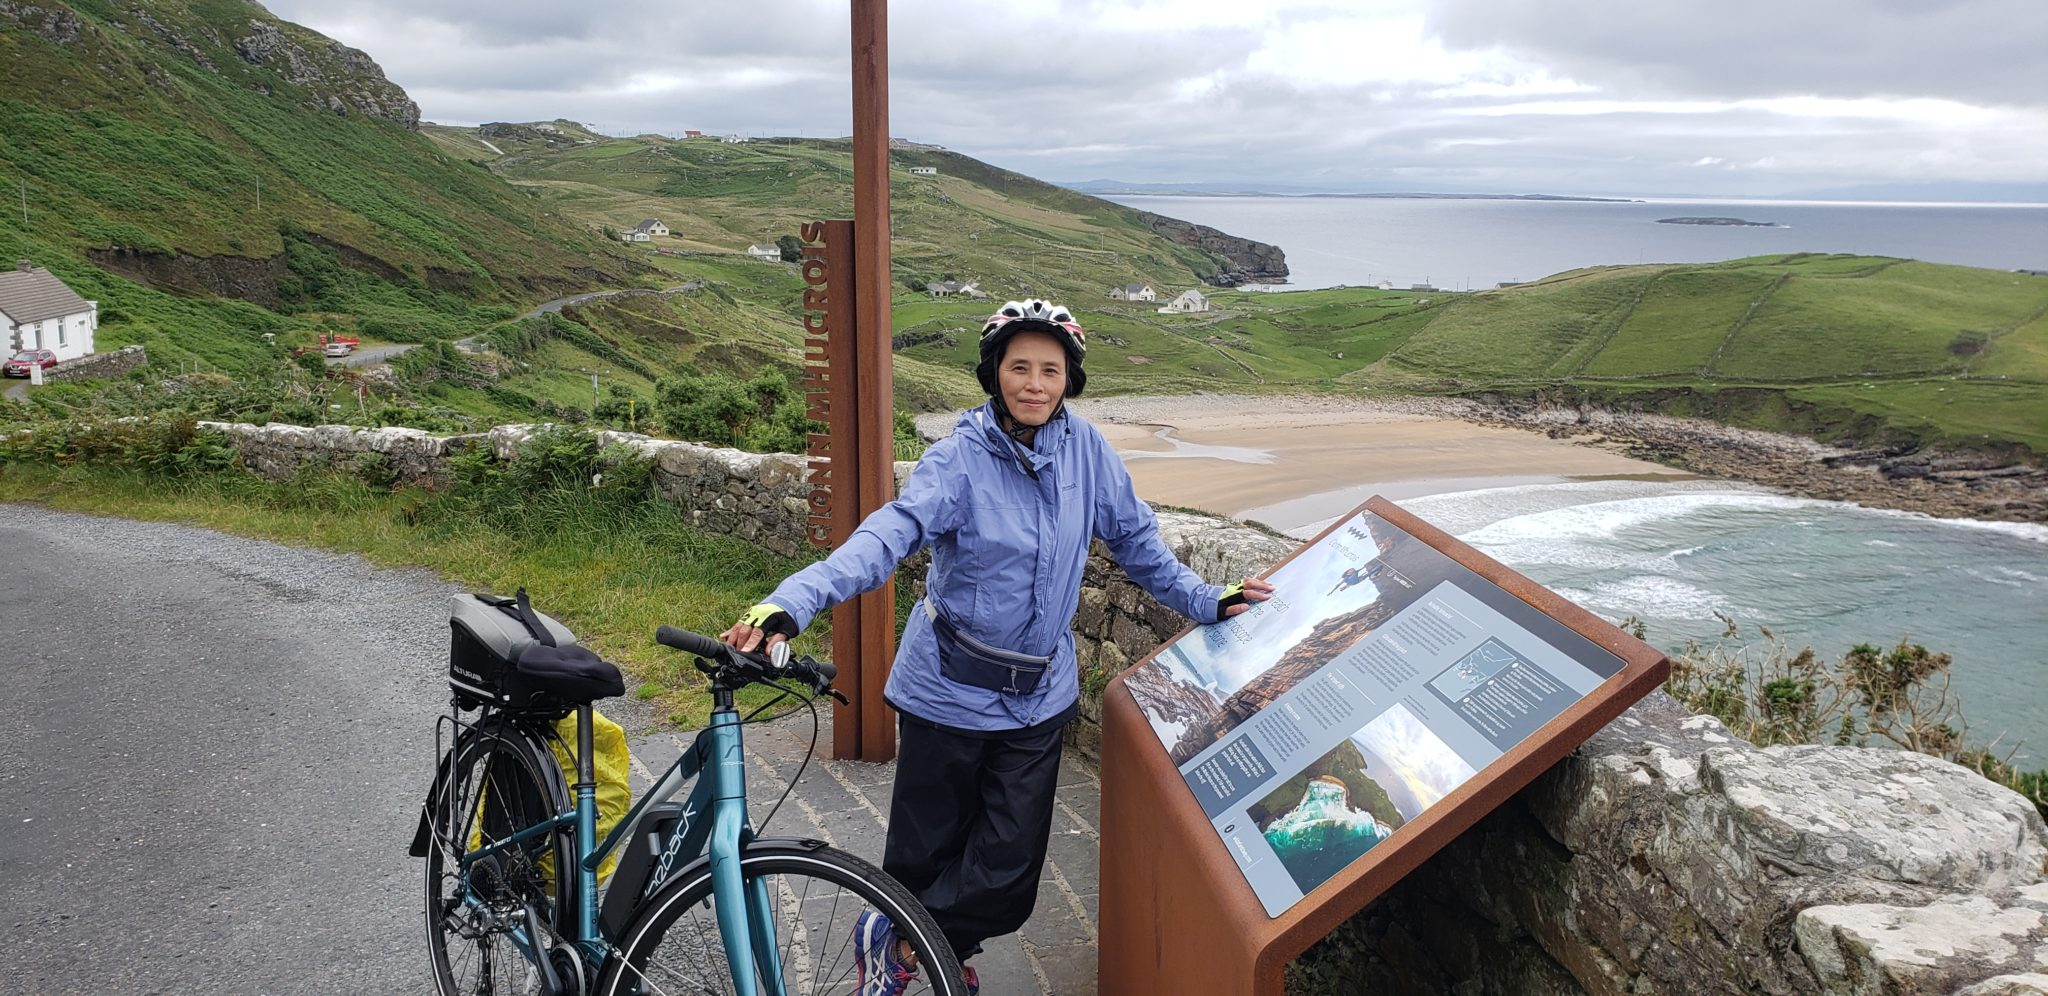 Woman with Bicycle at Muckross Head Viewing Point